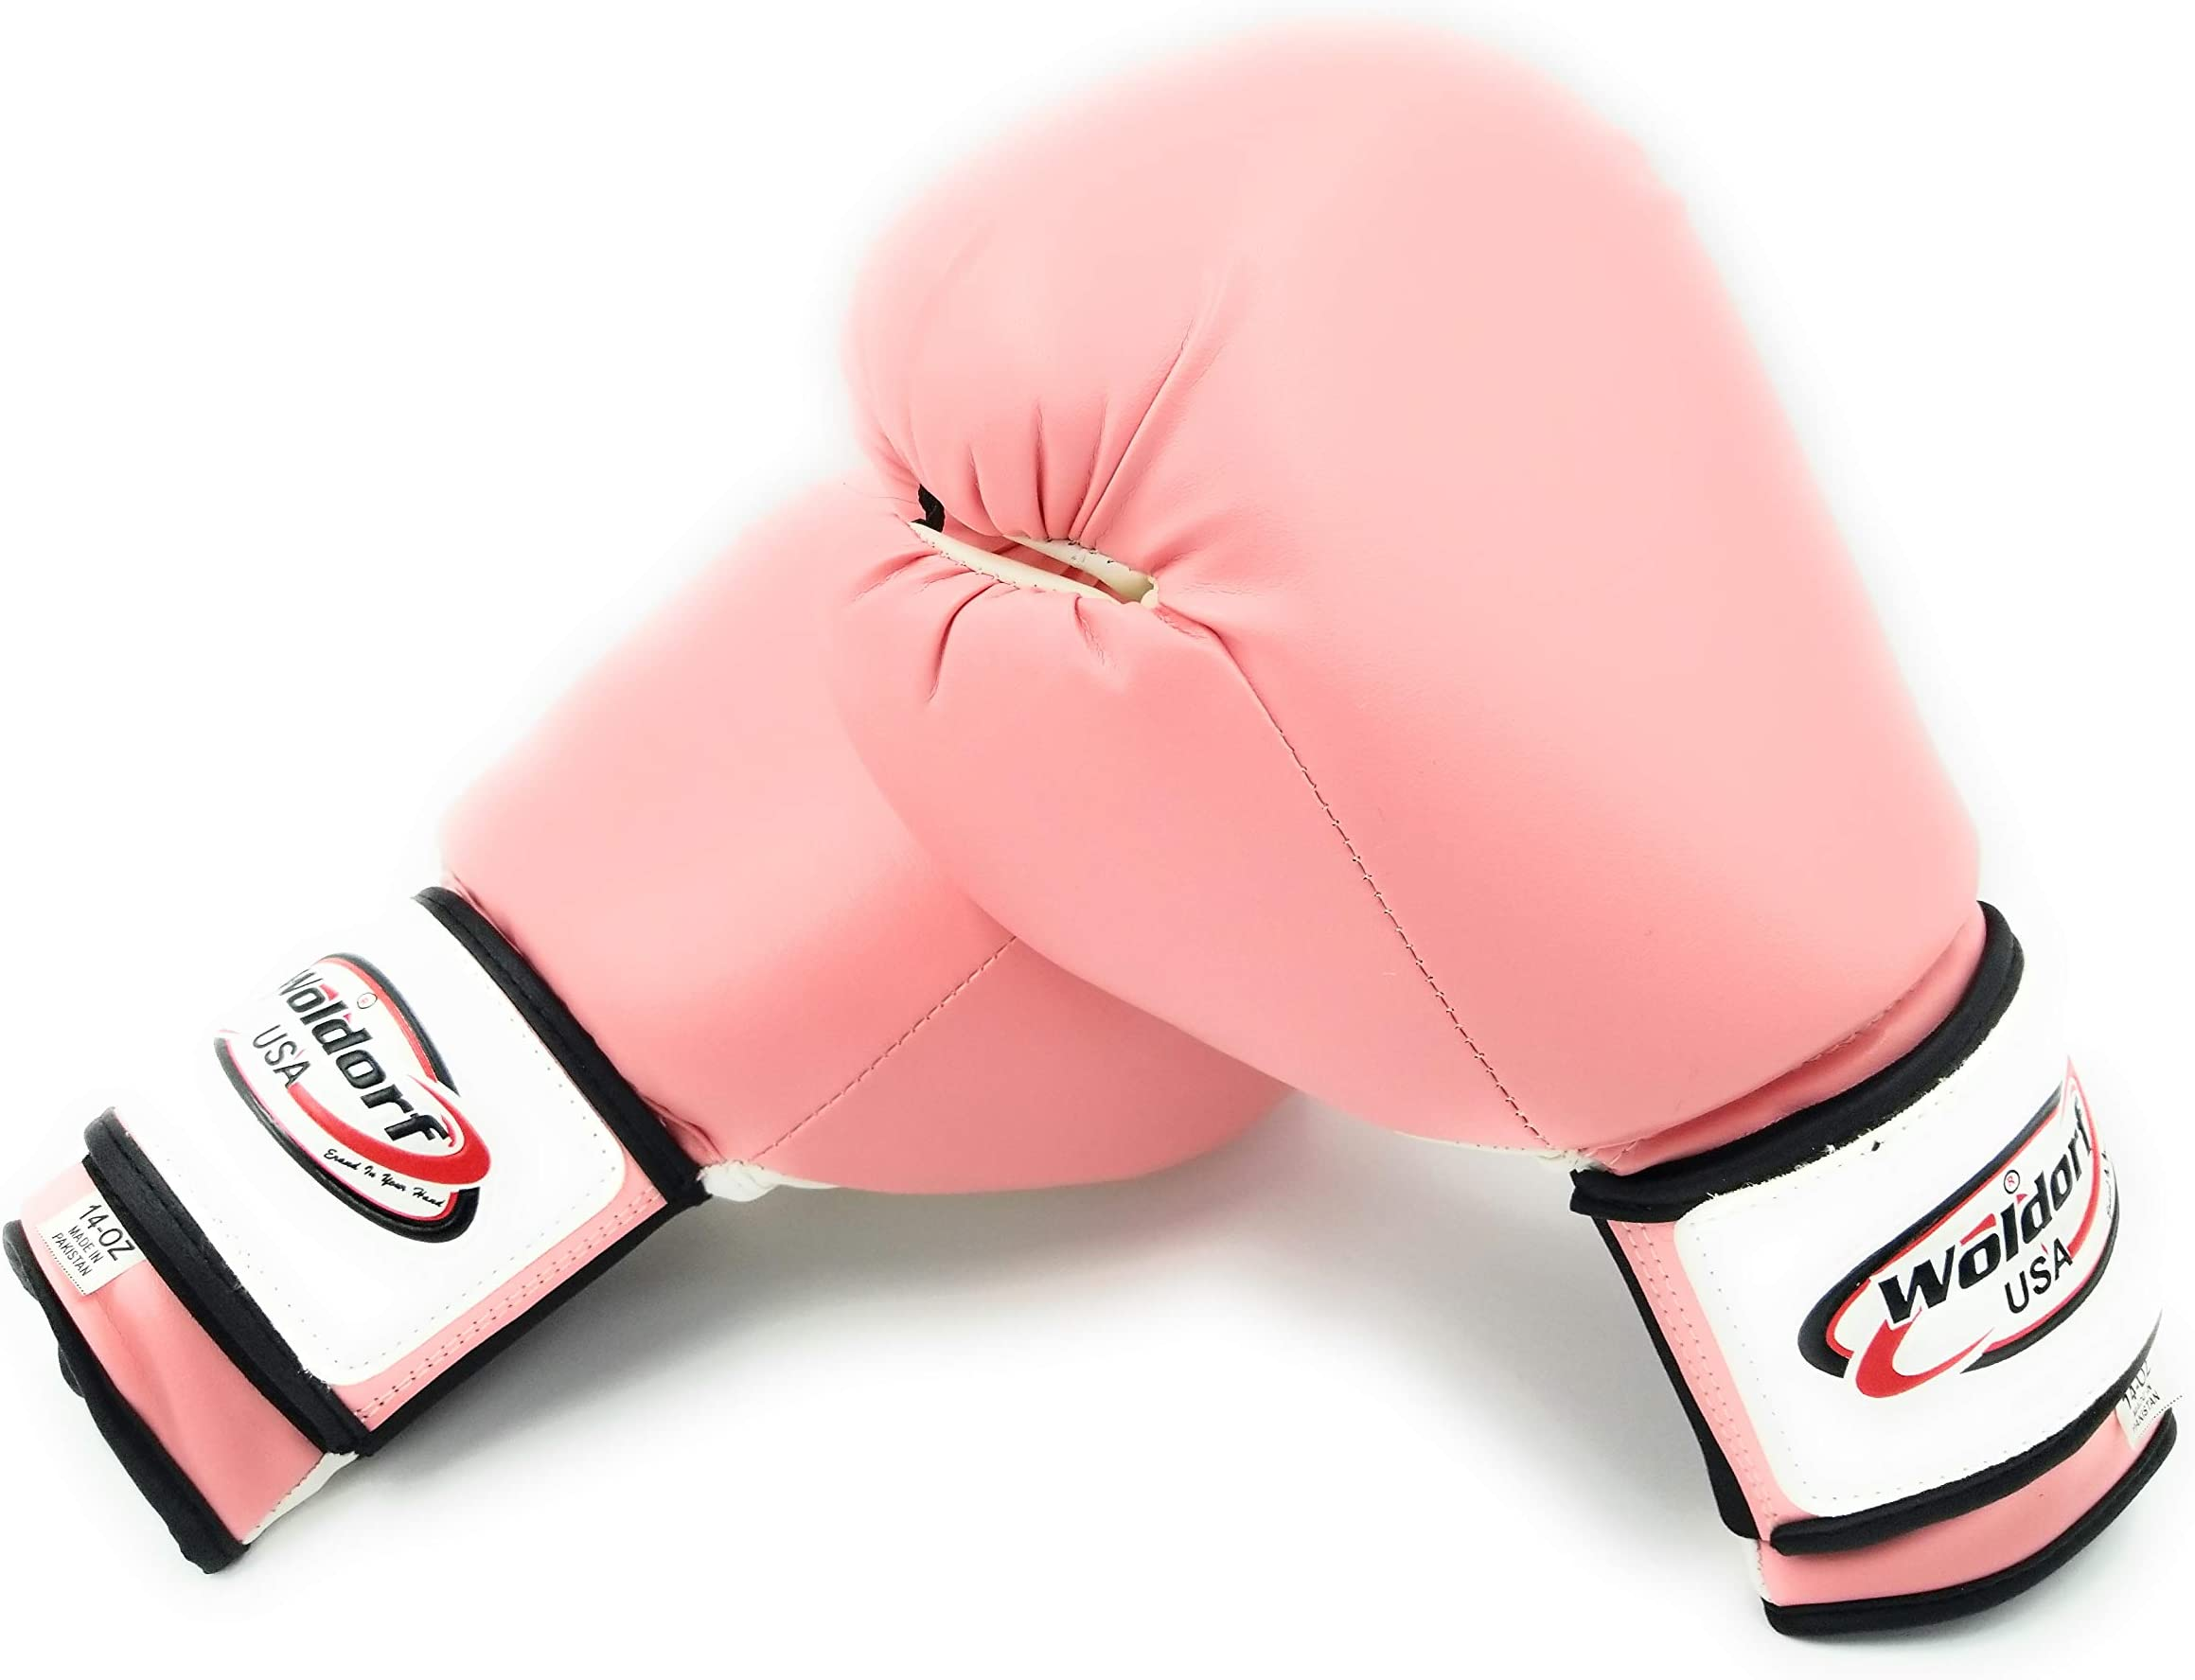 PINK A//L MUAY THAI BOXING TRAINING /& SPARRING GLOVES